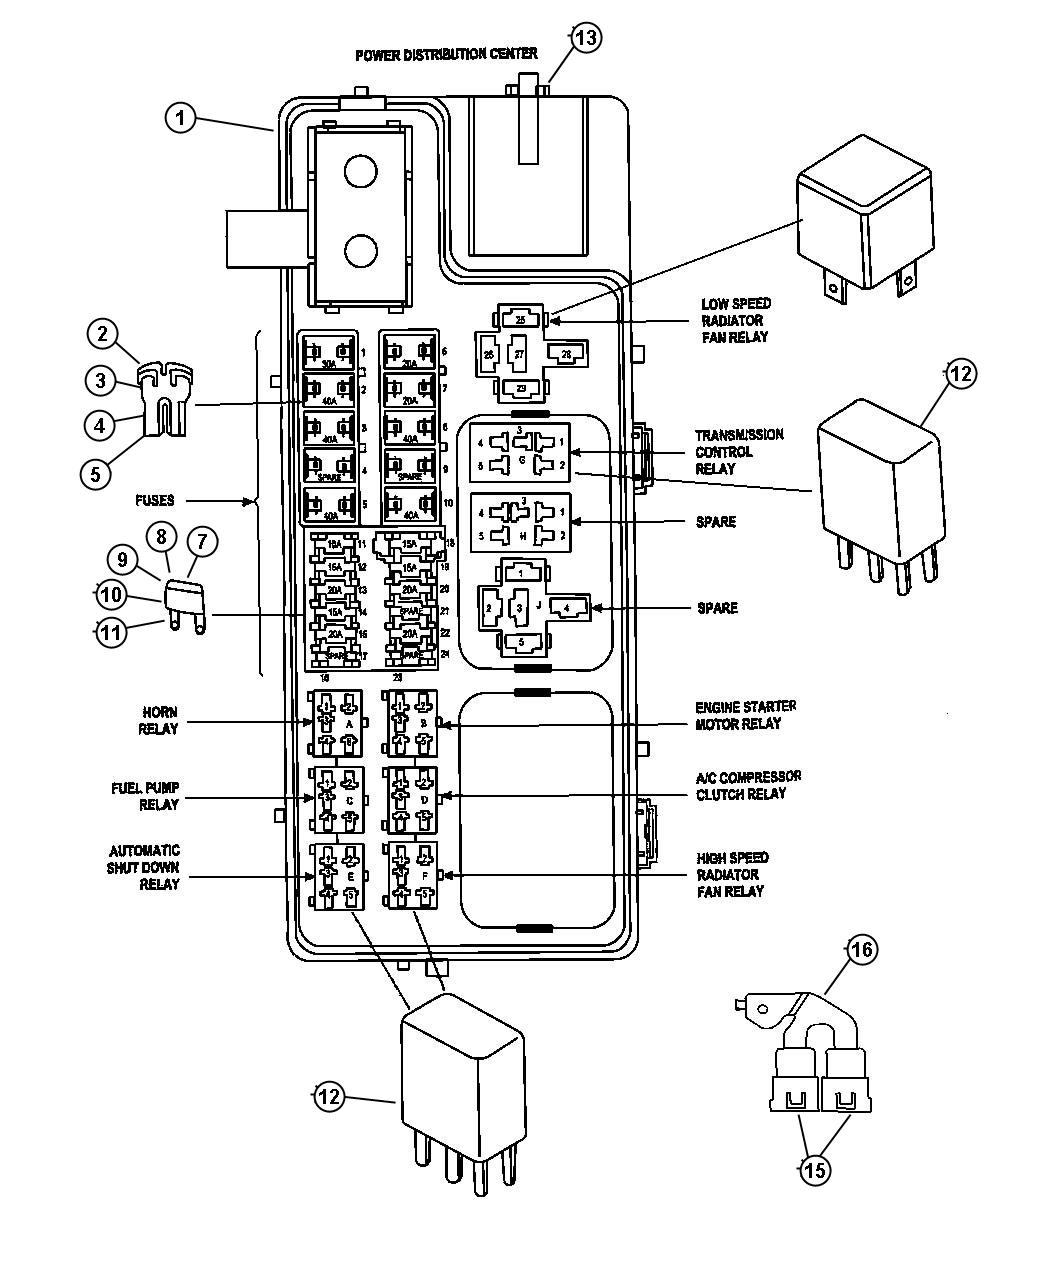 Sebring Wiring Diagram